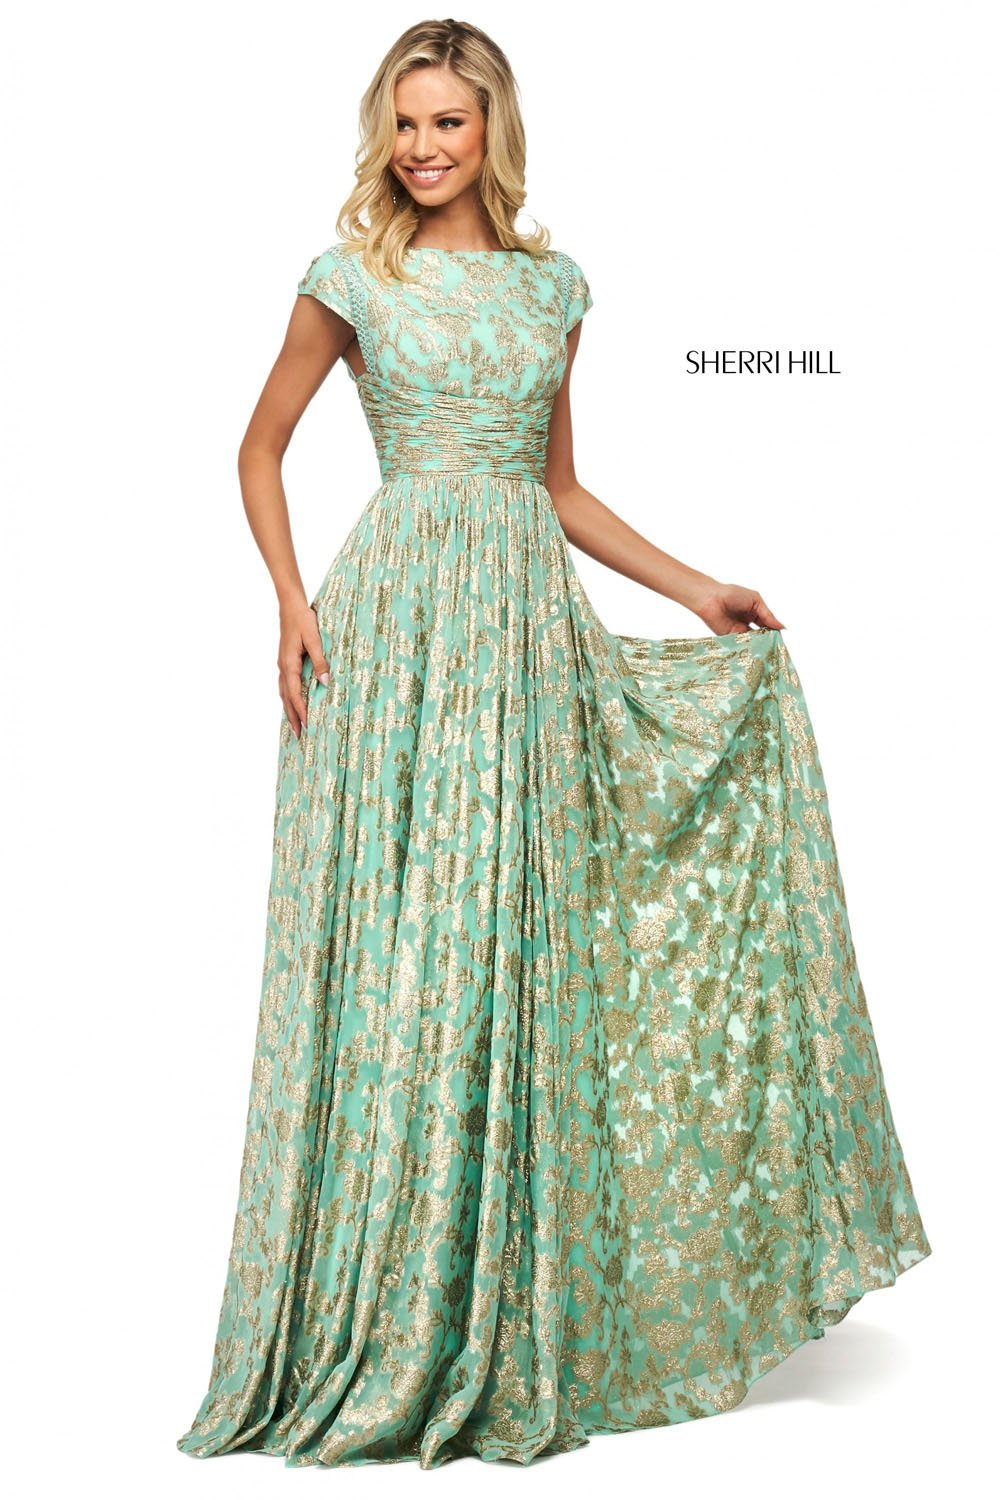 Sherri Hill 53348 prom dress images.  Sherri Hill 53348 is available in these colors: Aqua Gold, Ivory Gold, Blush Gold.